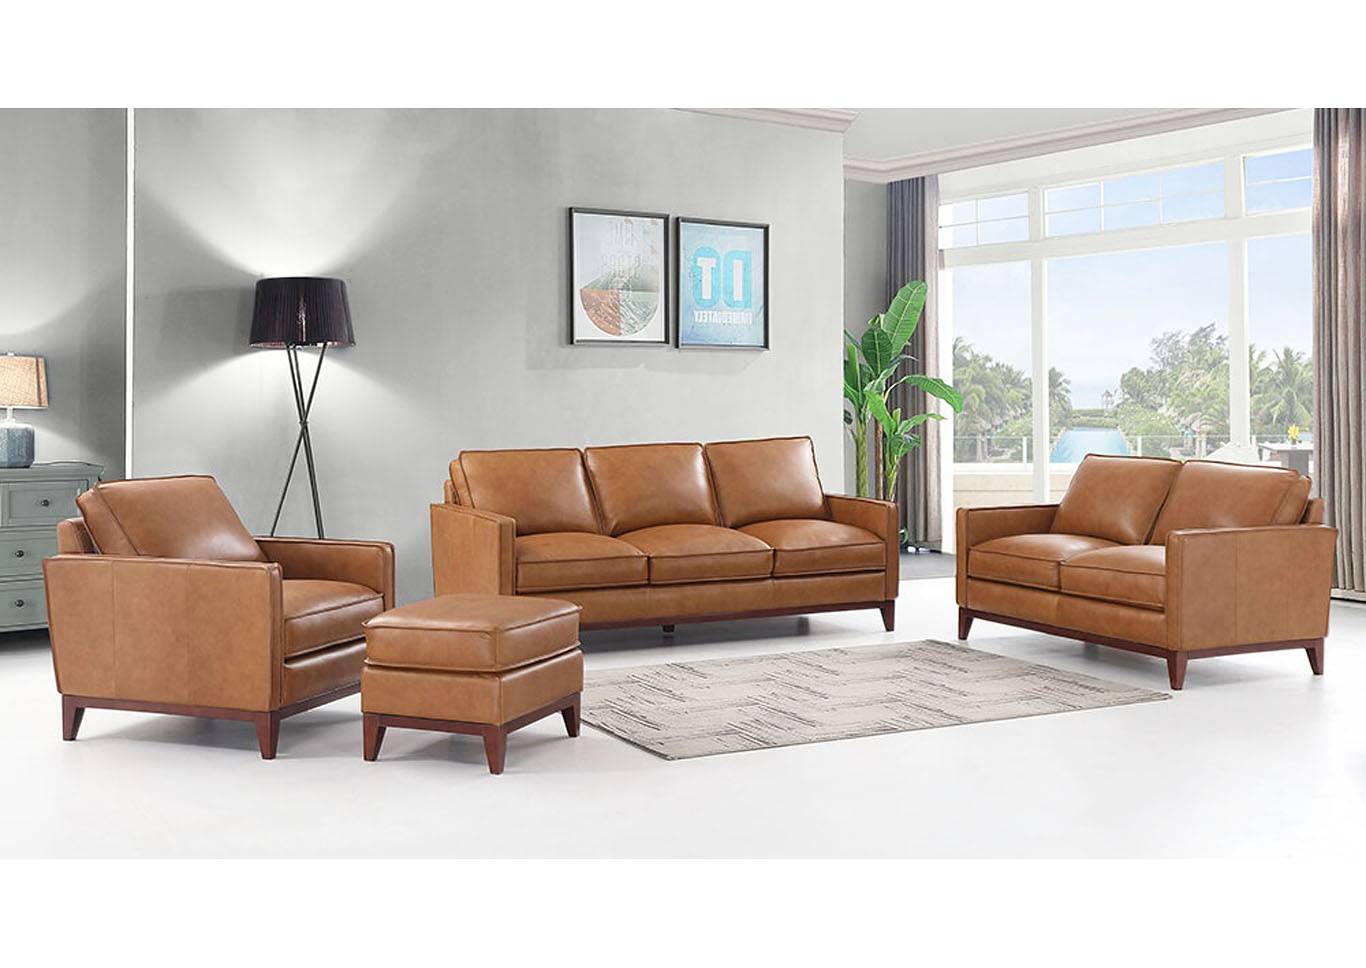 Newport Top Grain Leather Sofa and Love Seat,Instore